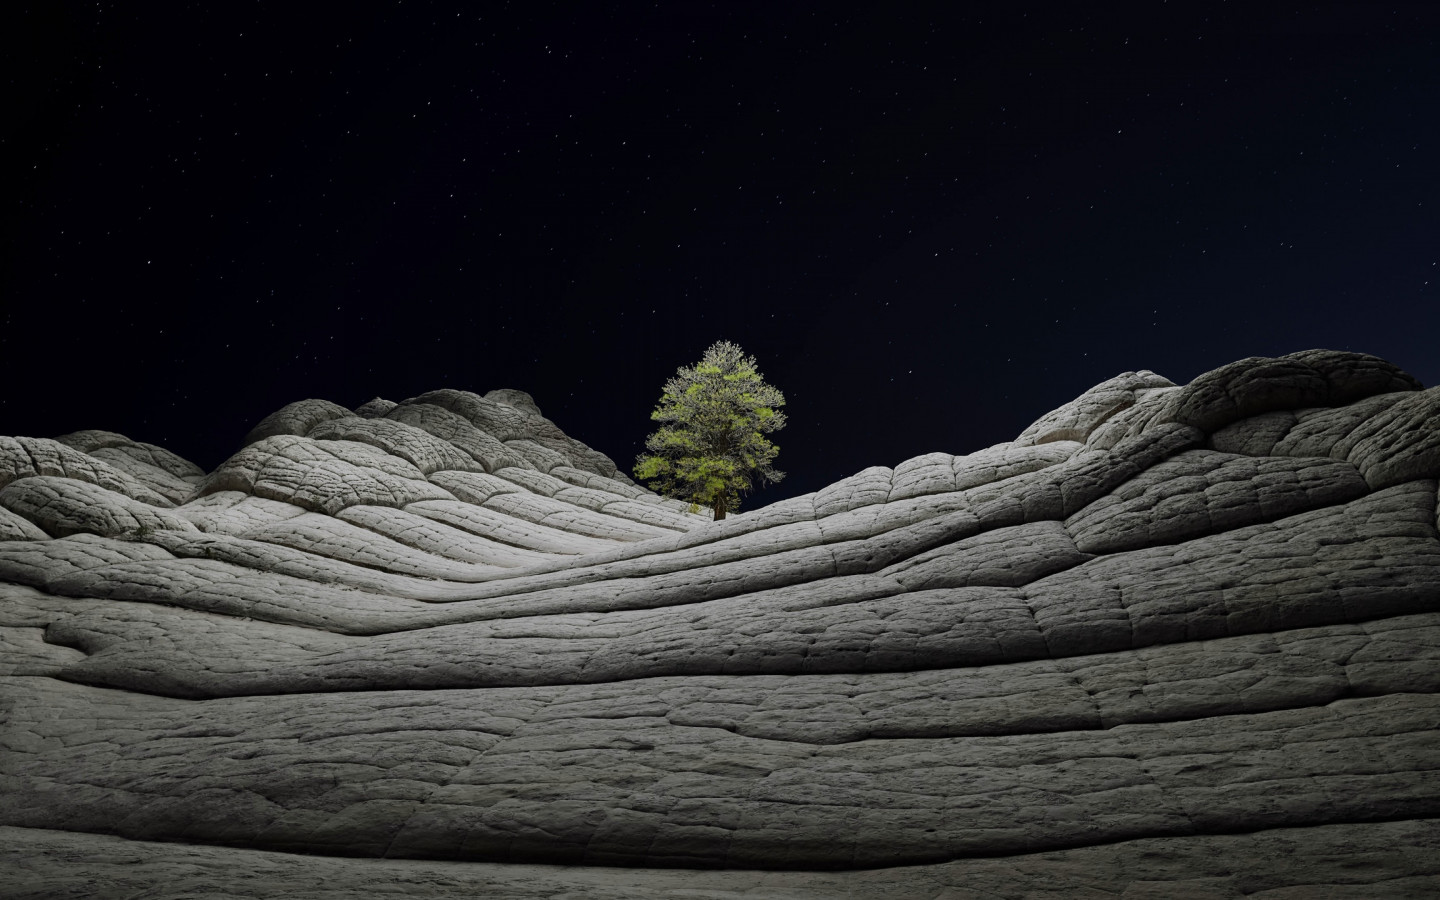 Desert tree in the cold night wallpaper 1440x900